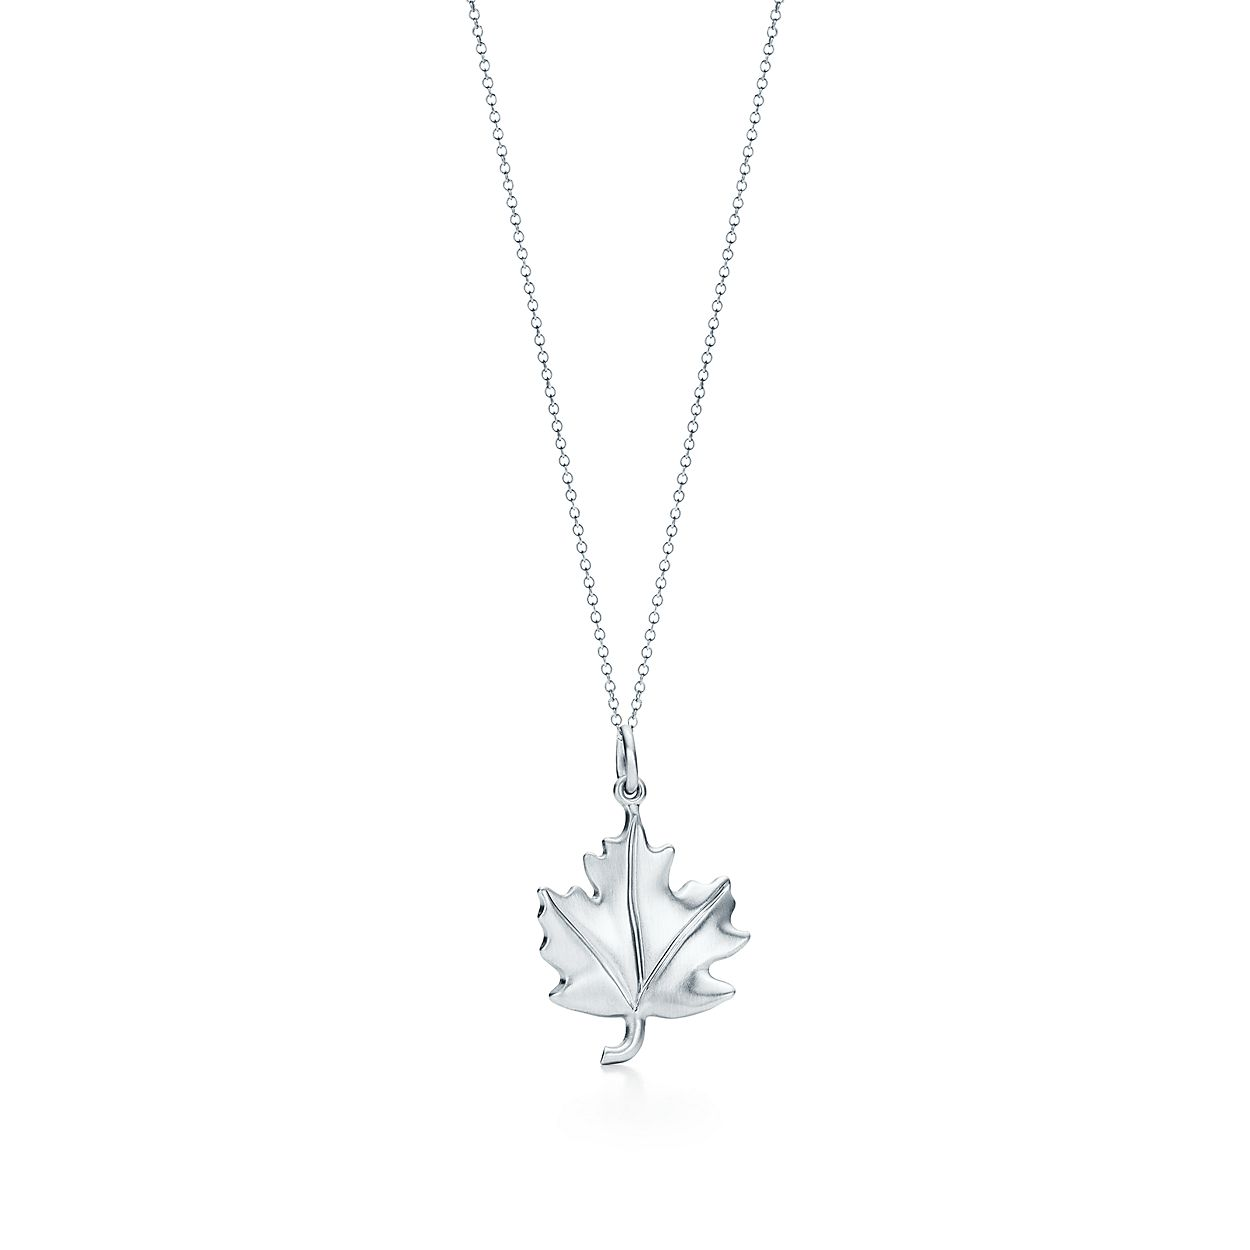 sterling bezel htm silver designed bezels pendant maple chain and p leaf